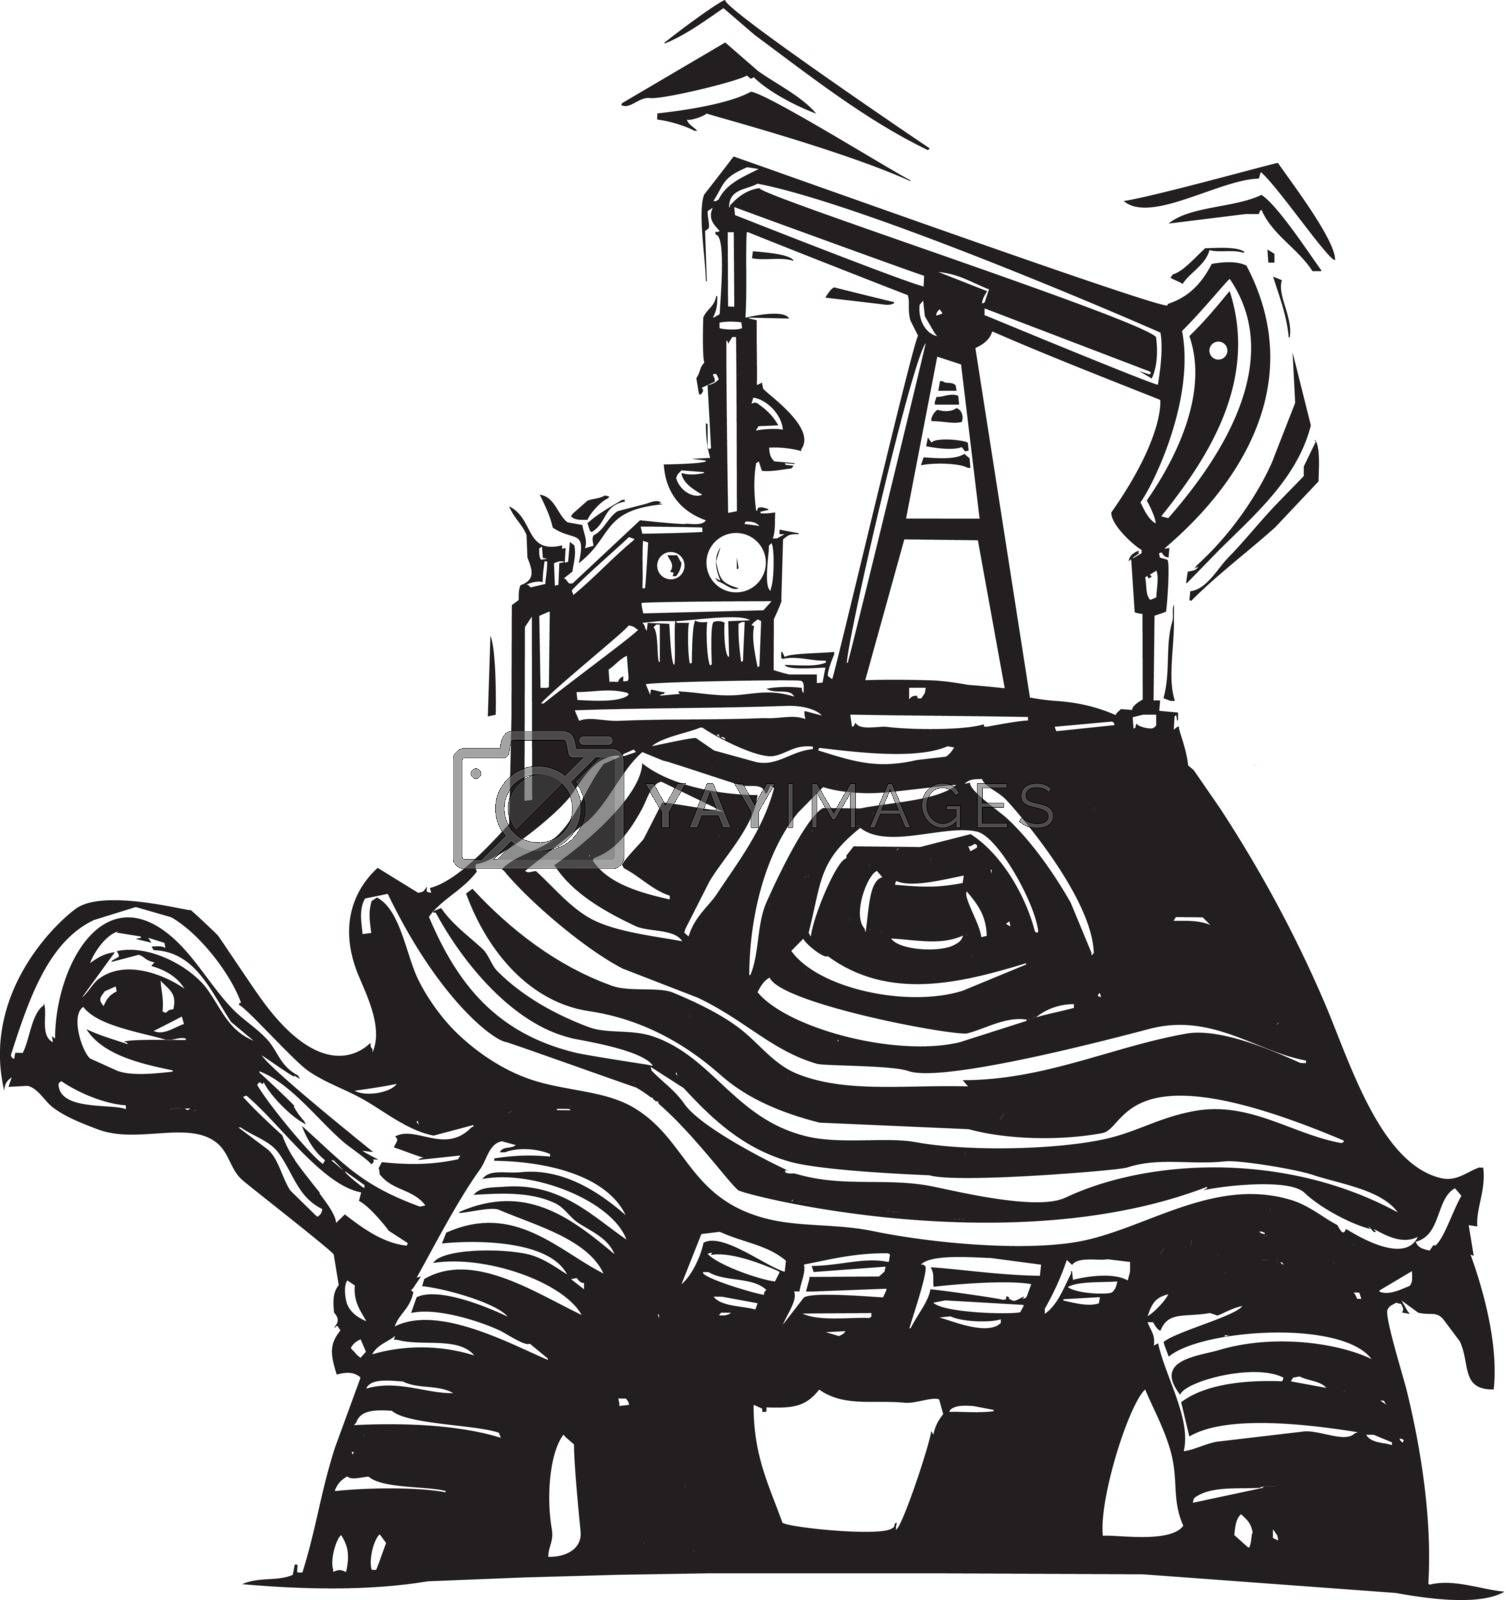 Woodcut style image of a turtle with an oil well pumping rig on his back.